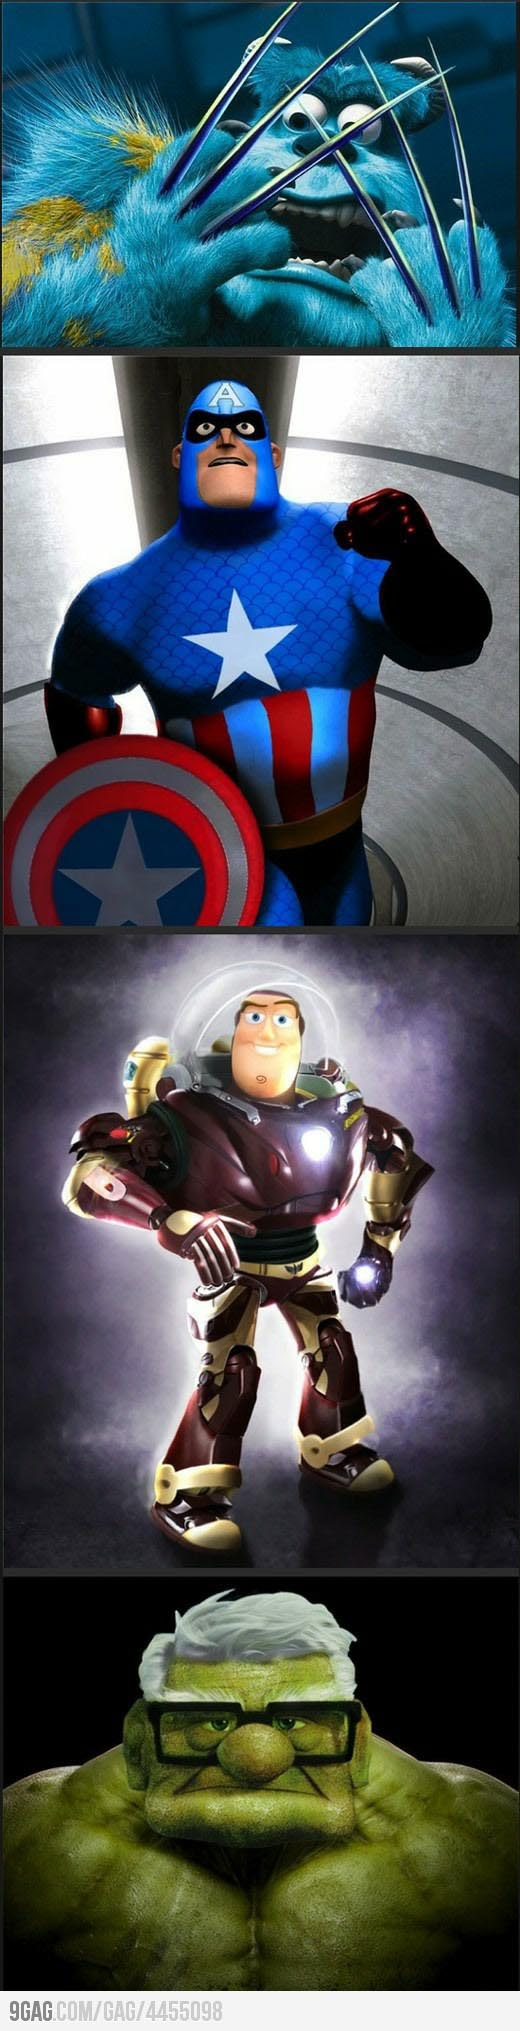 Pixar vs. Marvel Illustrations